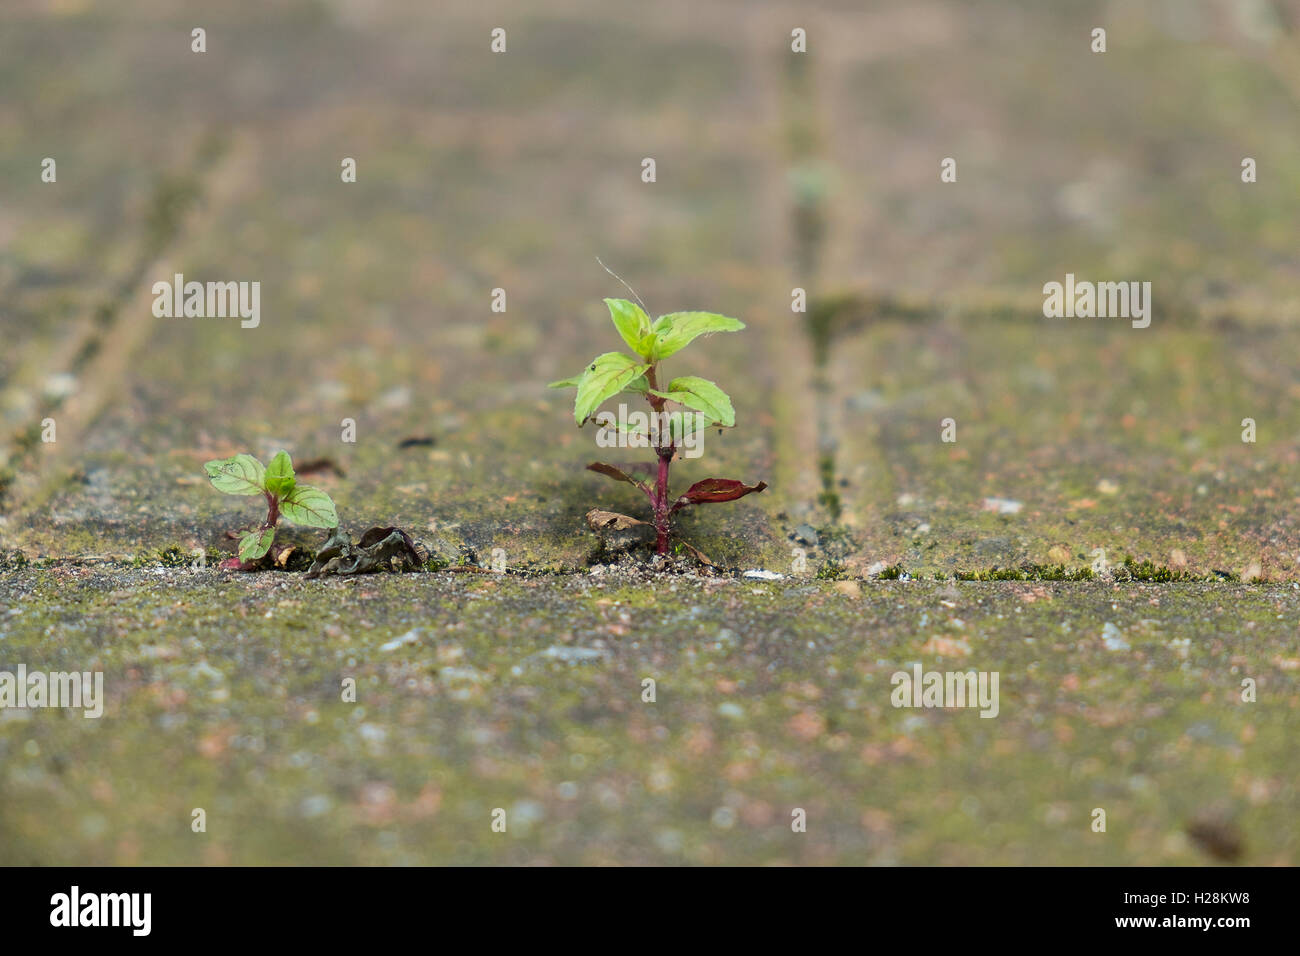 Small plant growing between bricks in paved yard - Stock Image